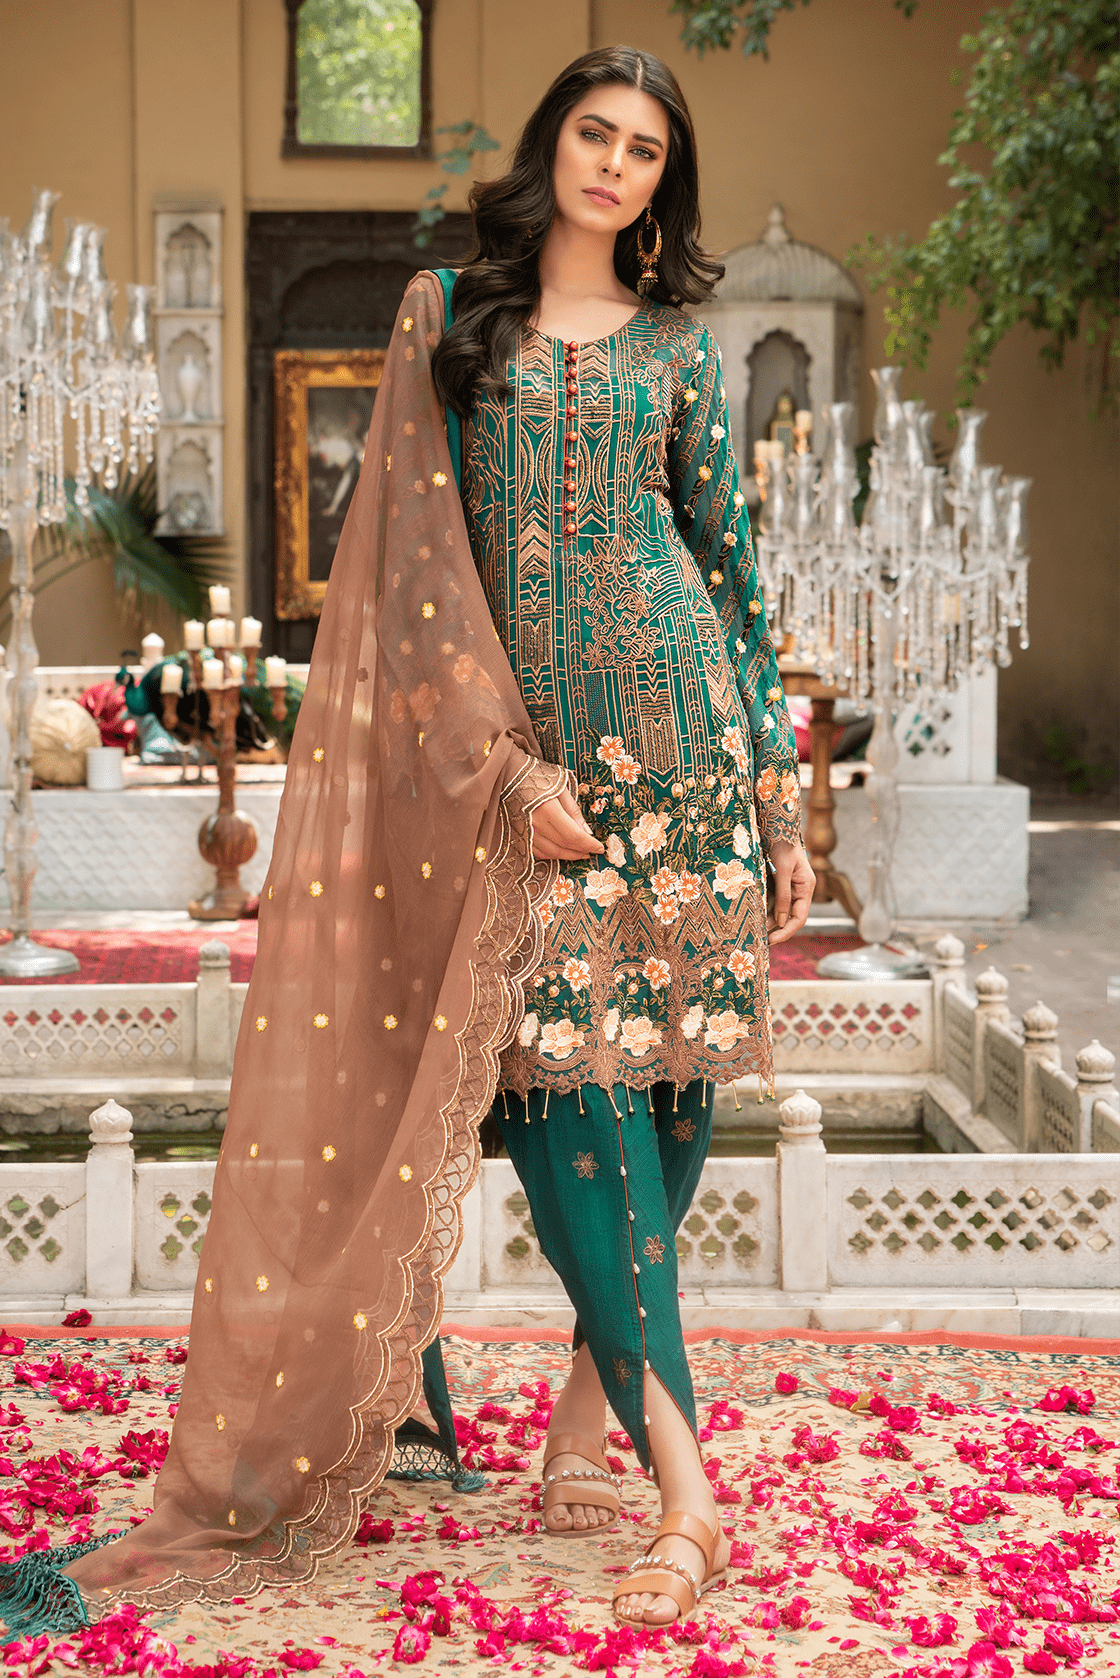 What are the Top pakistani brands For Traditional Clothes? And Where to find them?